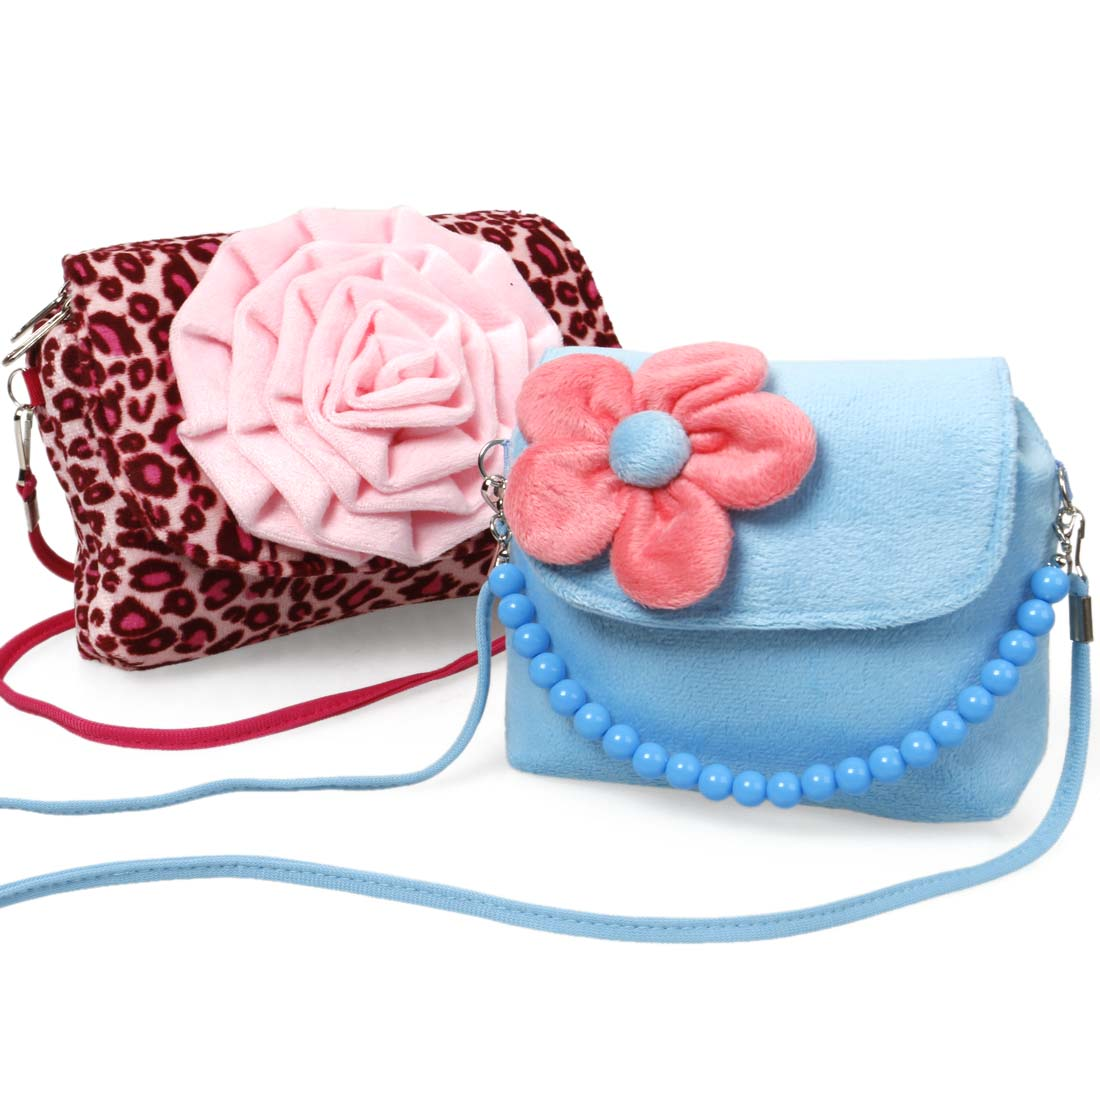 Bundle Monster Cute 2pc Little Girls Fashionable Fun Fuzzy Floral Handbag Set